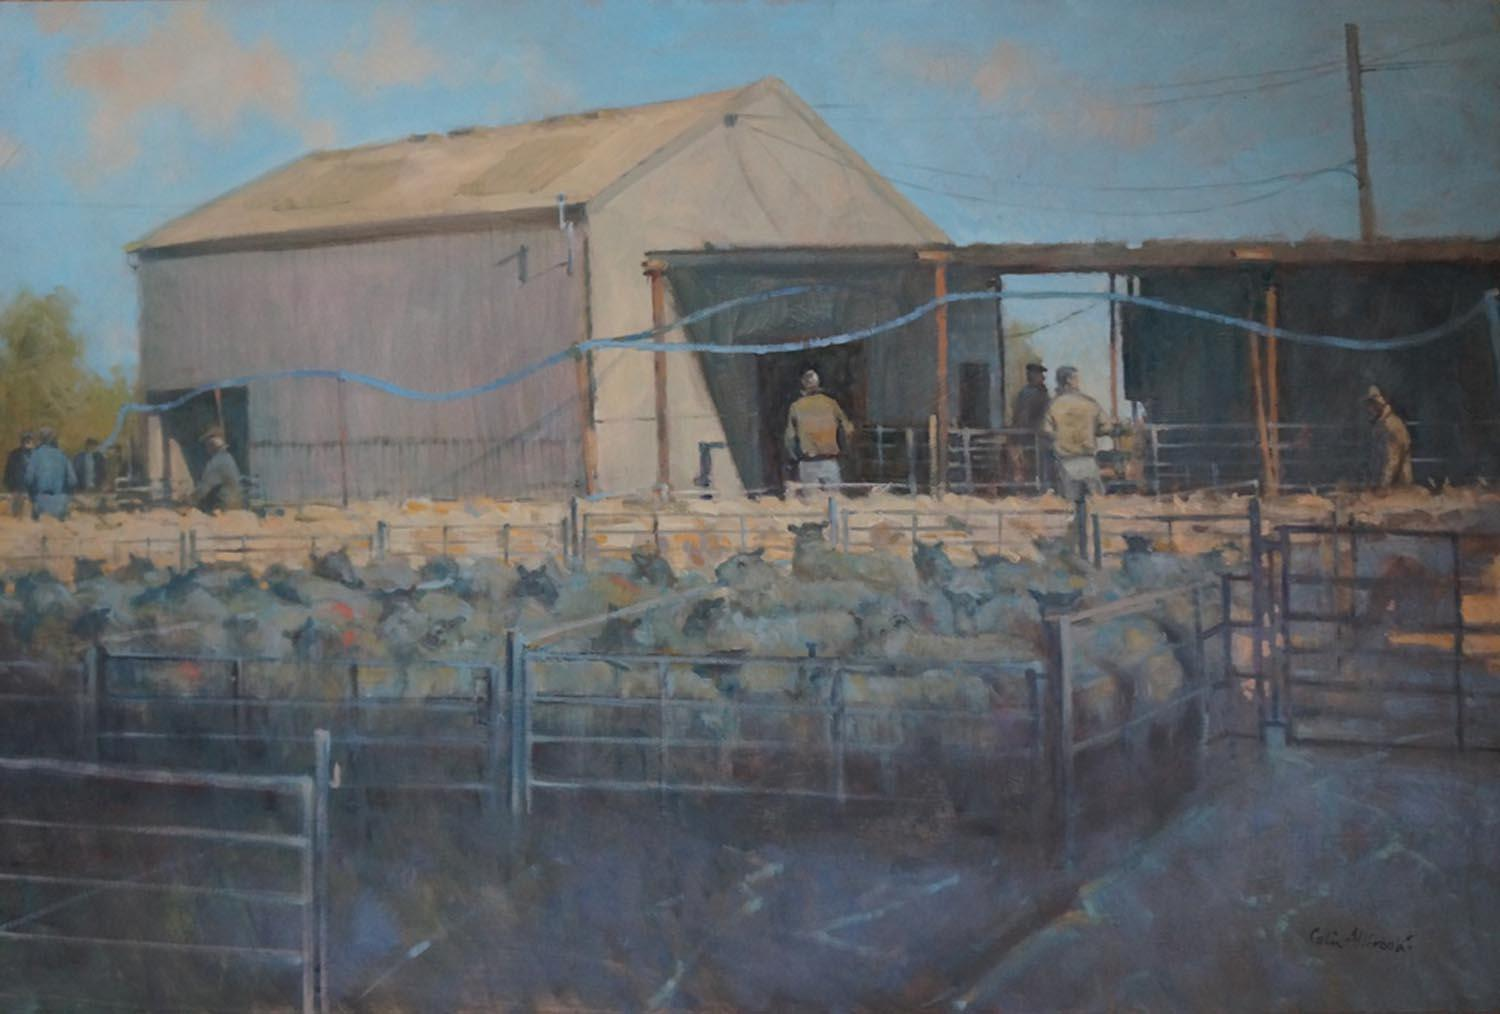 Morning Sheep Market, an original oil painting on canvas